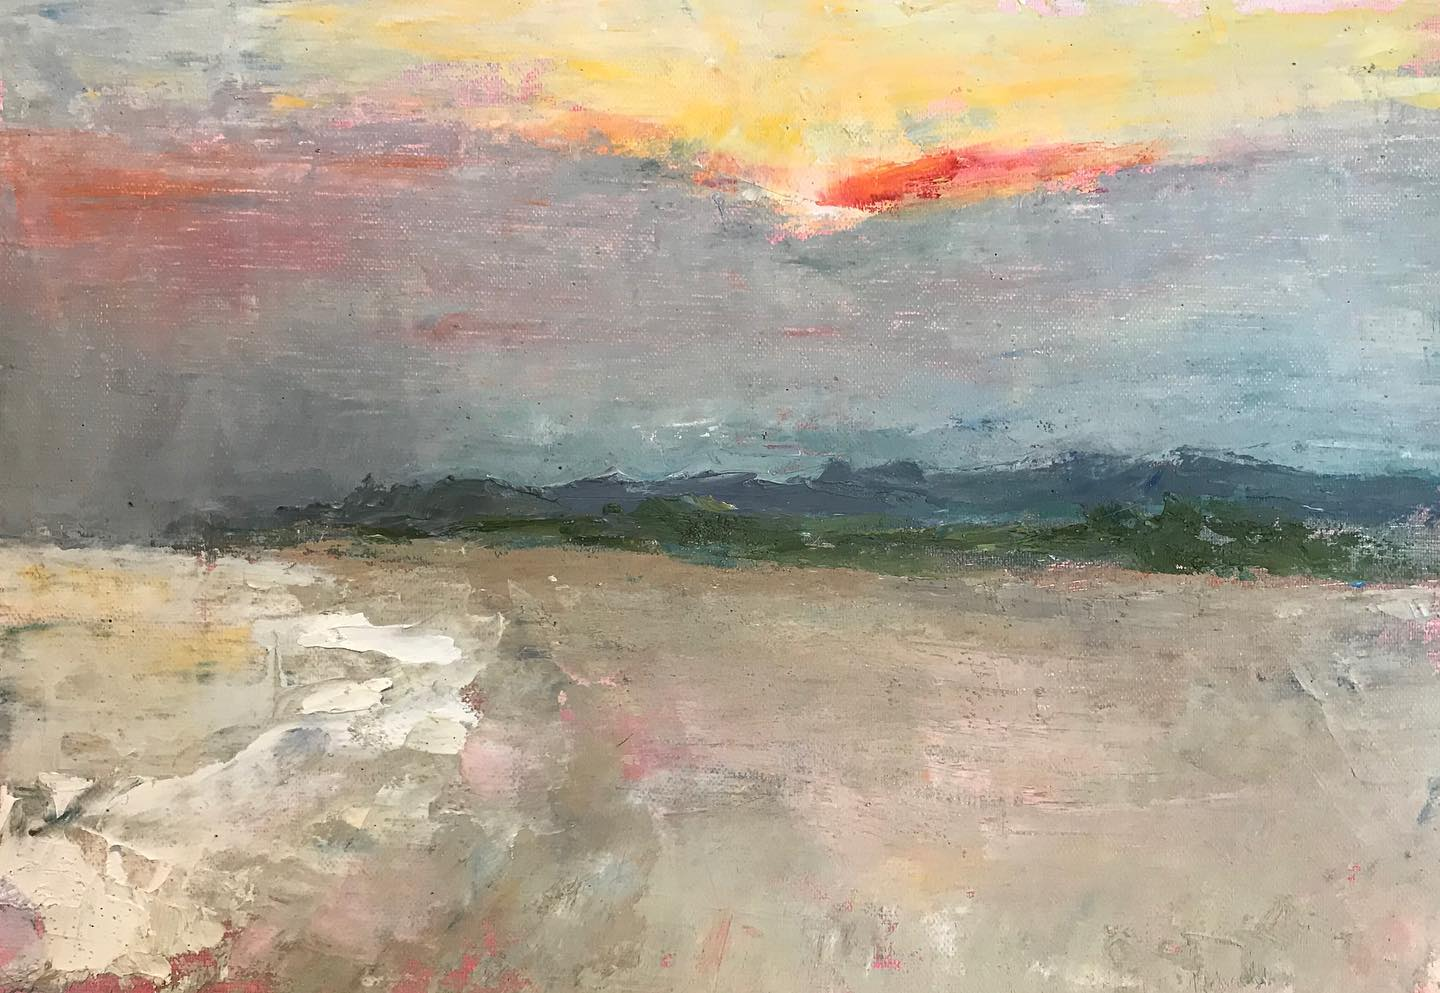 """Sunset at Cove Beach"" oil on linen mounted on board, 7.25x10 inches"